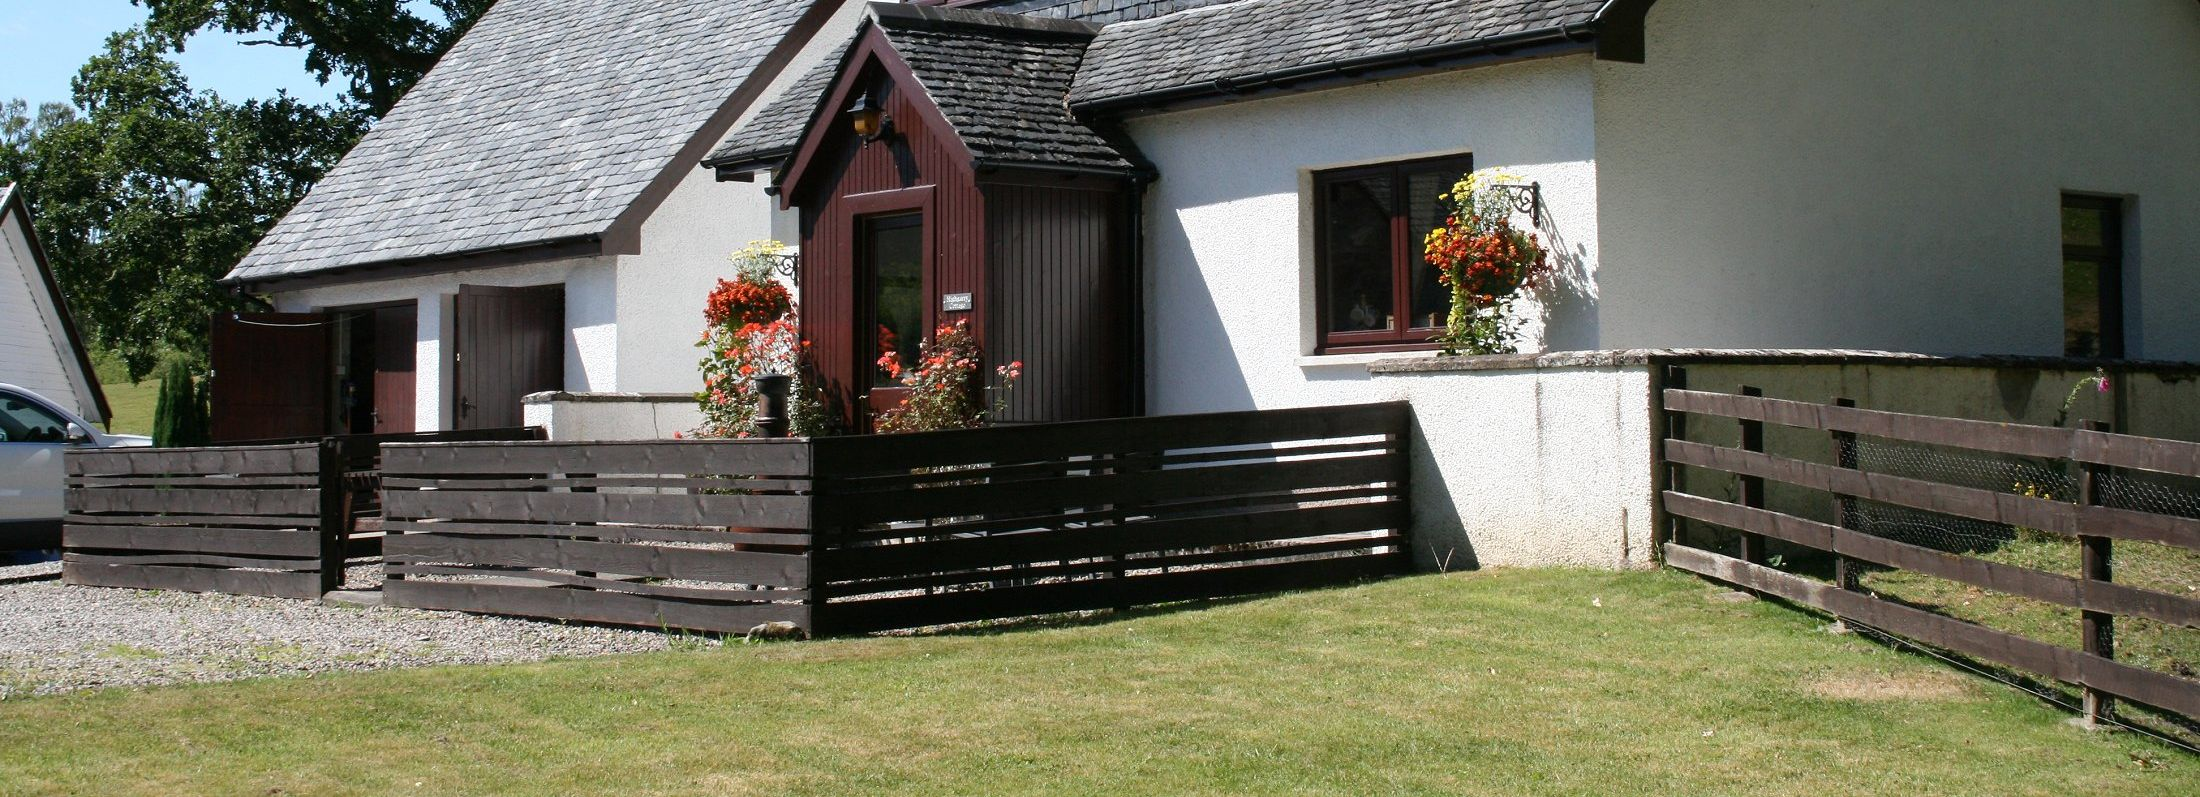 Highgarry Cottage self catering